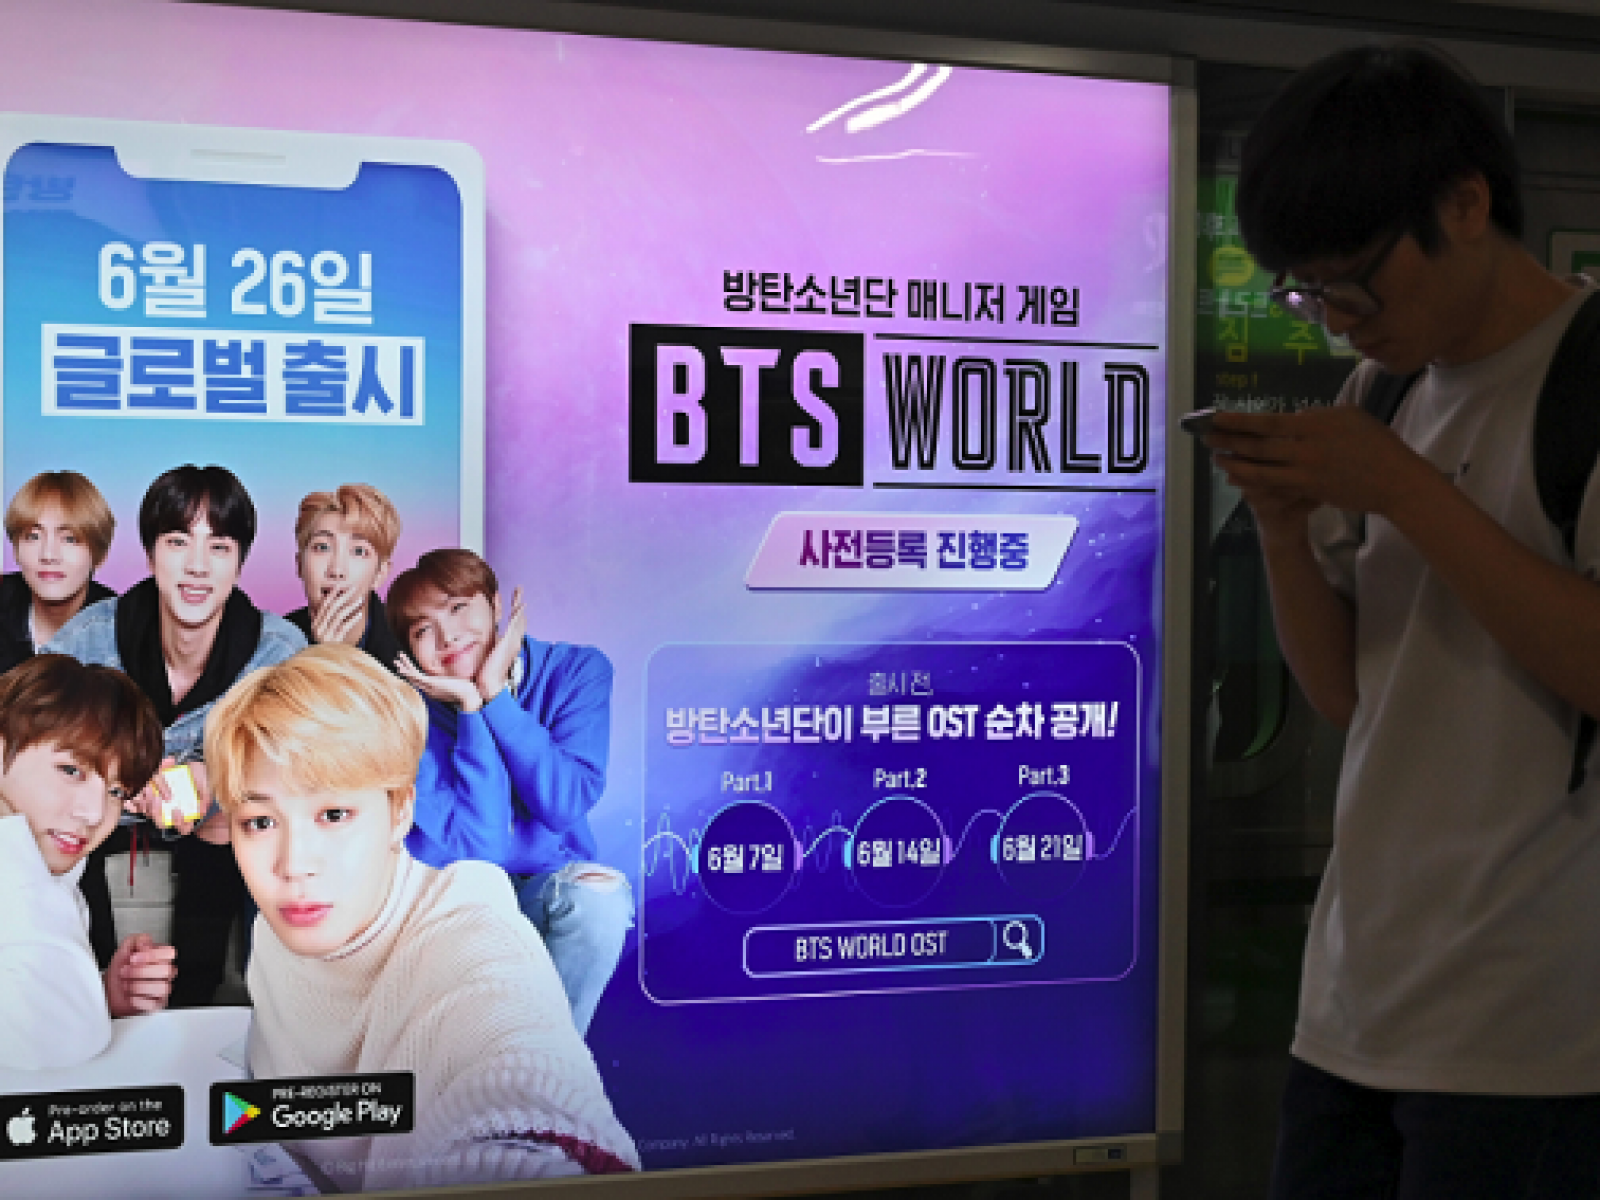 bts world mobile game appears android before iphone prompting fan clashes twitter